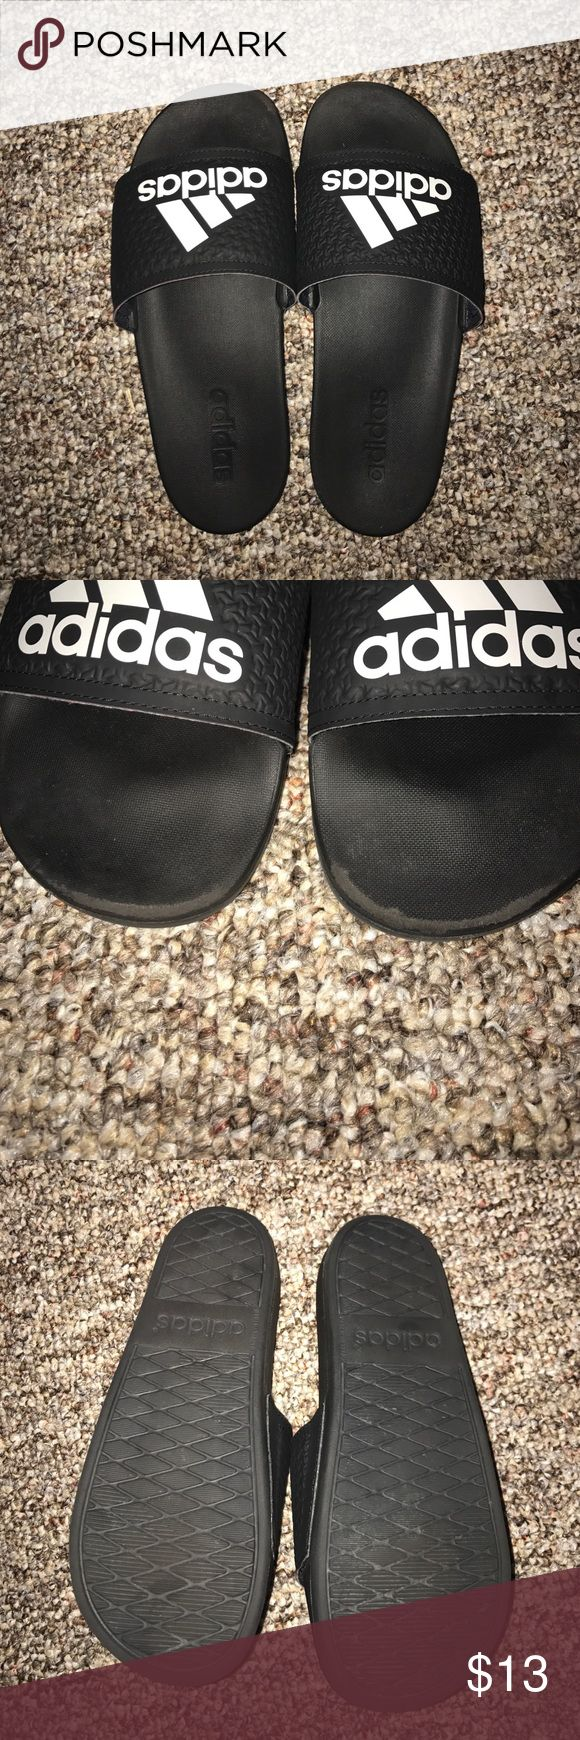 87b3c9192049 Buy adidas sandals with bumps   OFF79% Discounted